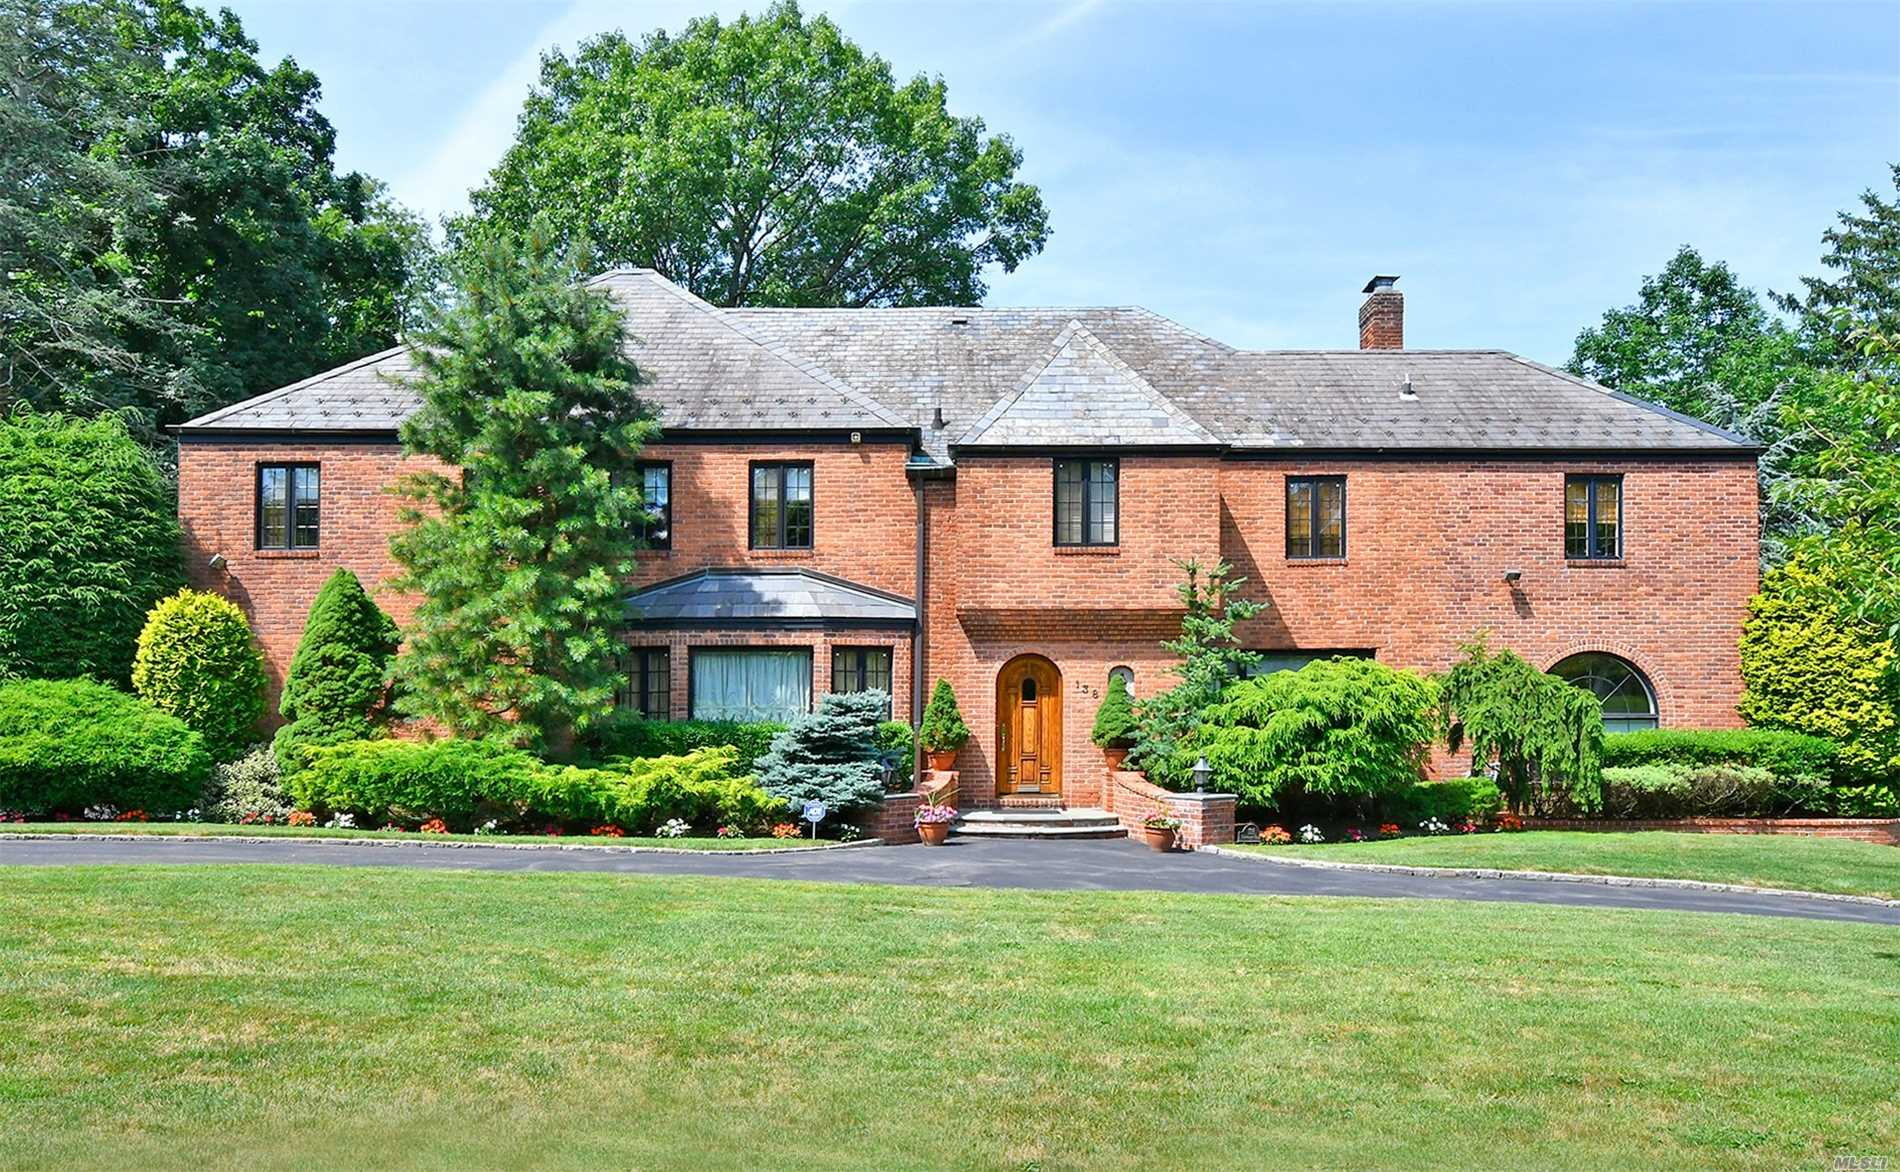 In The Heart Of Strathmore Village Lavish Classic Details Hallmark This Magnificent 6 Bedroom, 5.5 Full Bathroom All-Brick Approx.5, 200 Sq Ft. English Tudor. Situated On Approx. .37Of Park-Like Property, This Home Features Supreme Design Details And Quintessential Elegance.